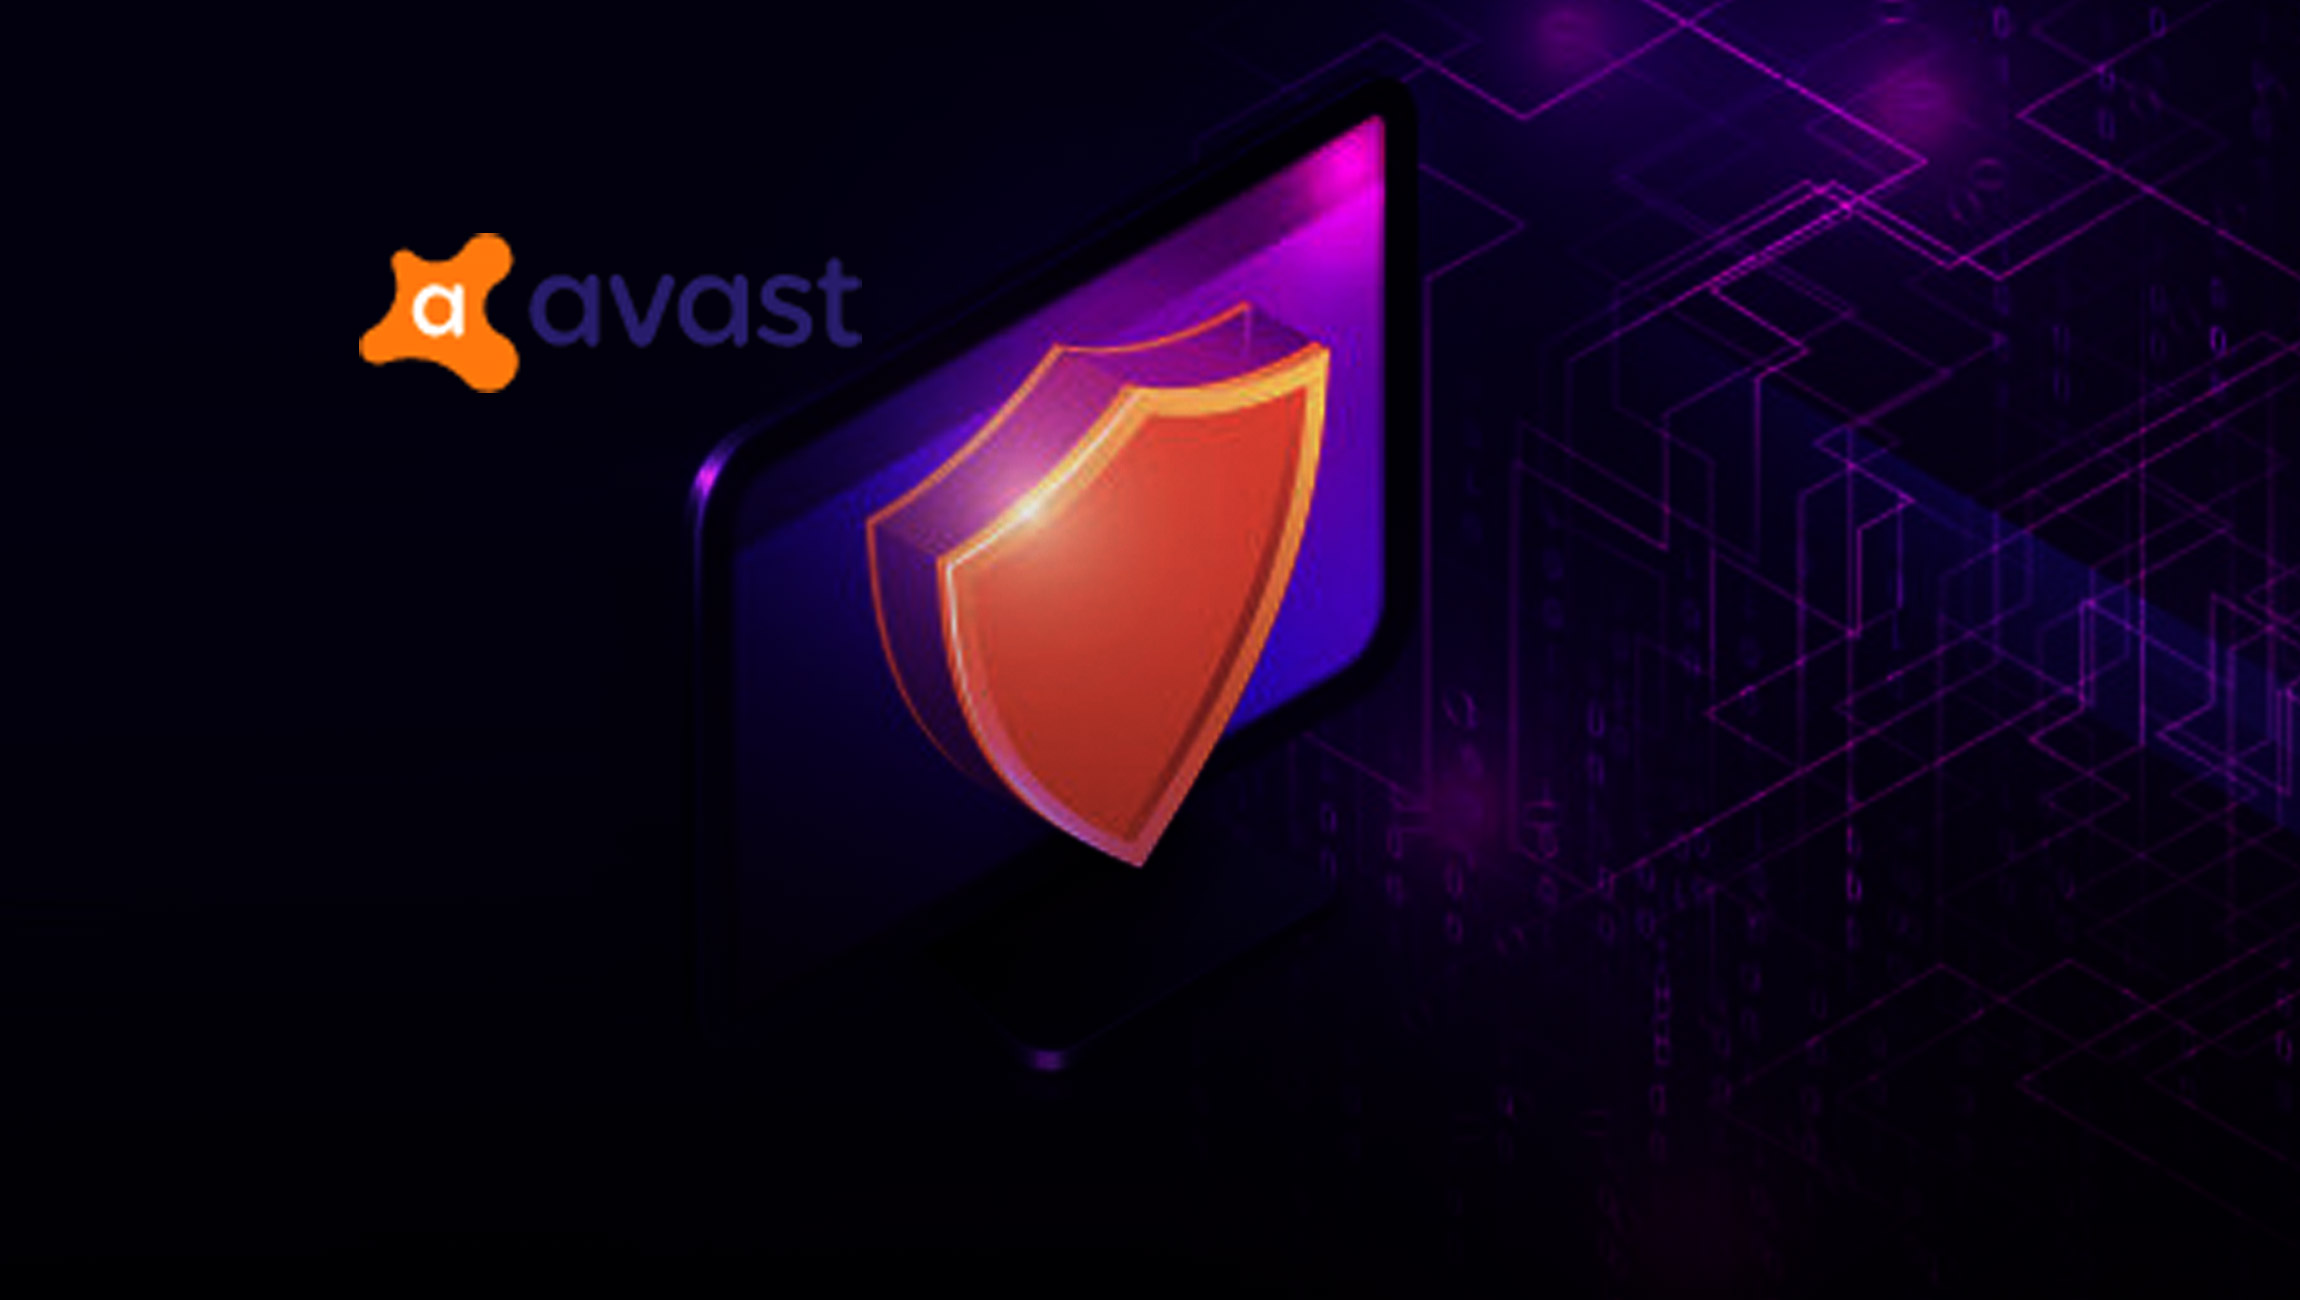 Avast's virtualised 5G security solution enables operators to protect subscribers' connected devices at the network level